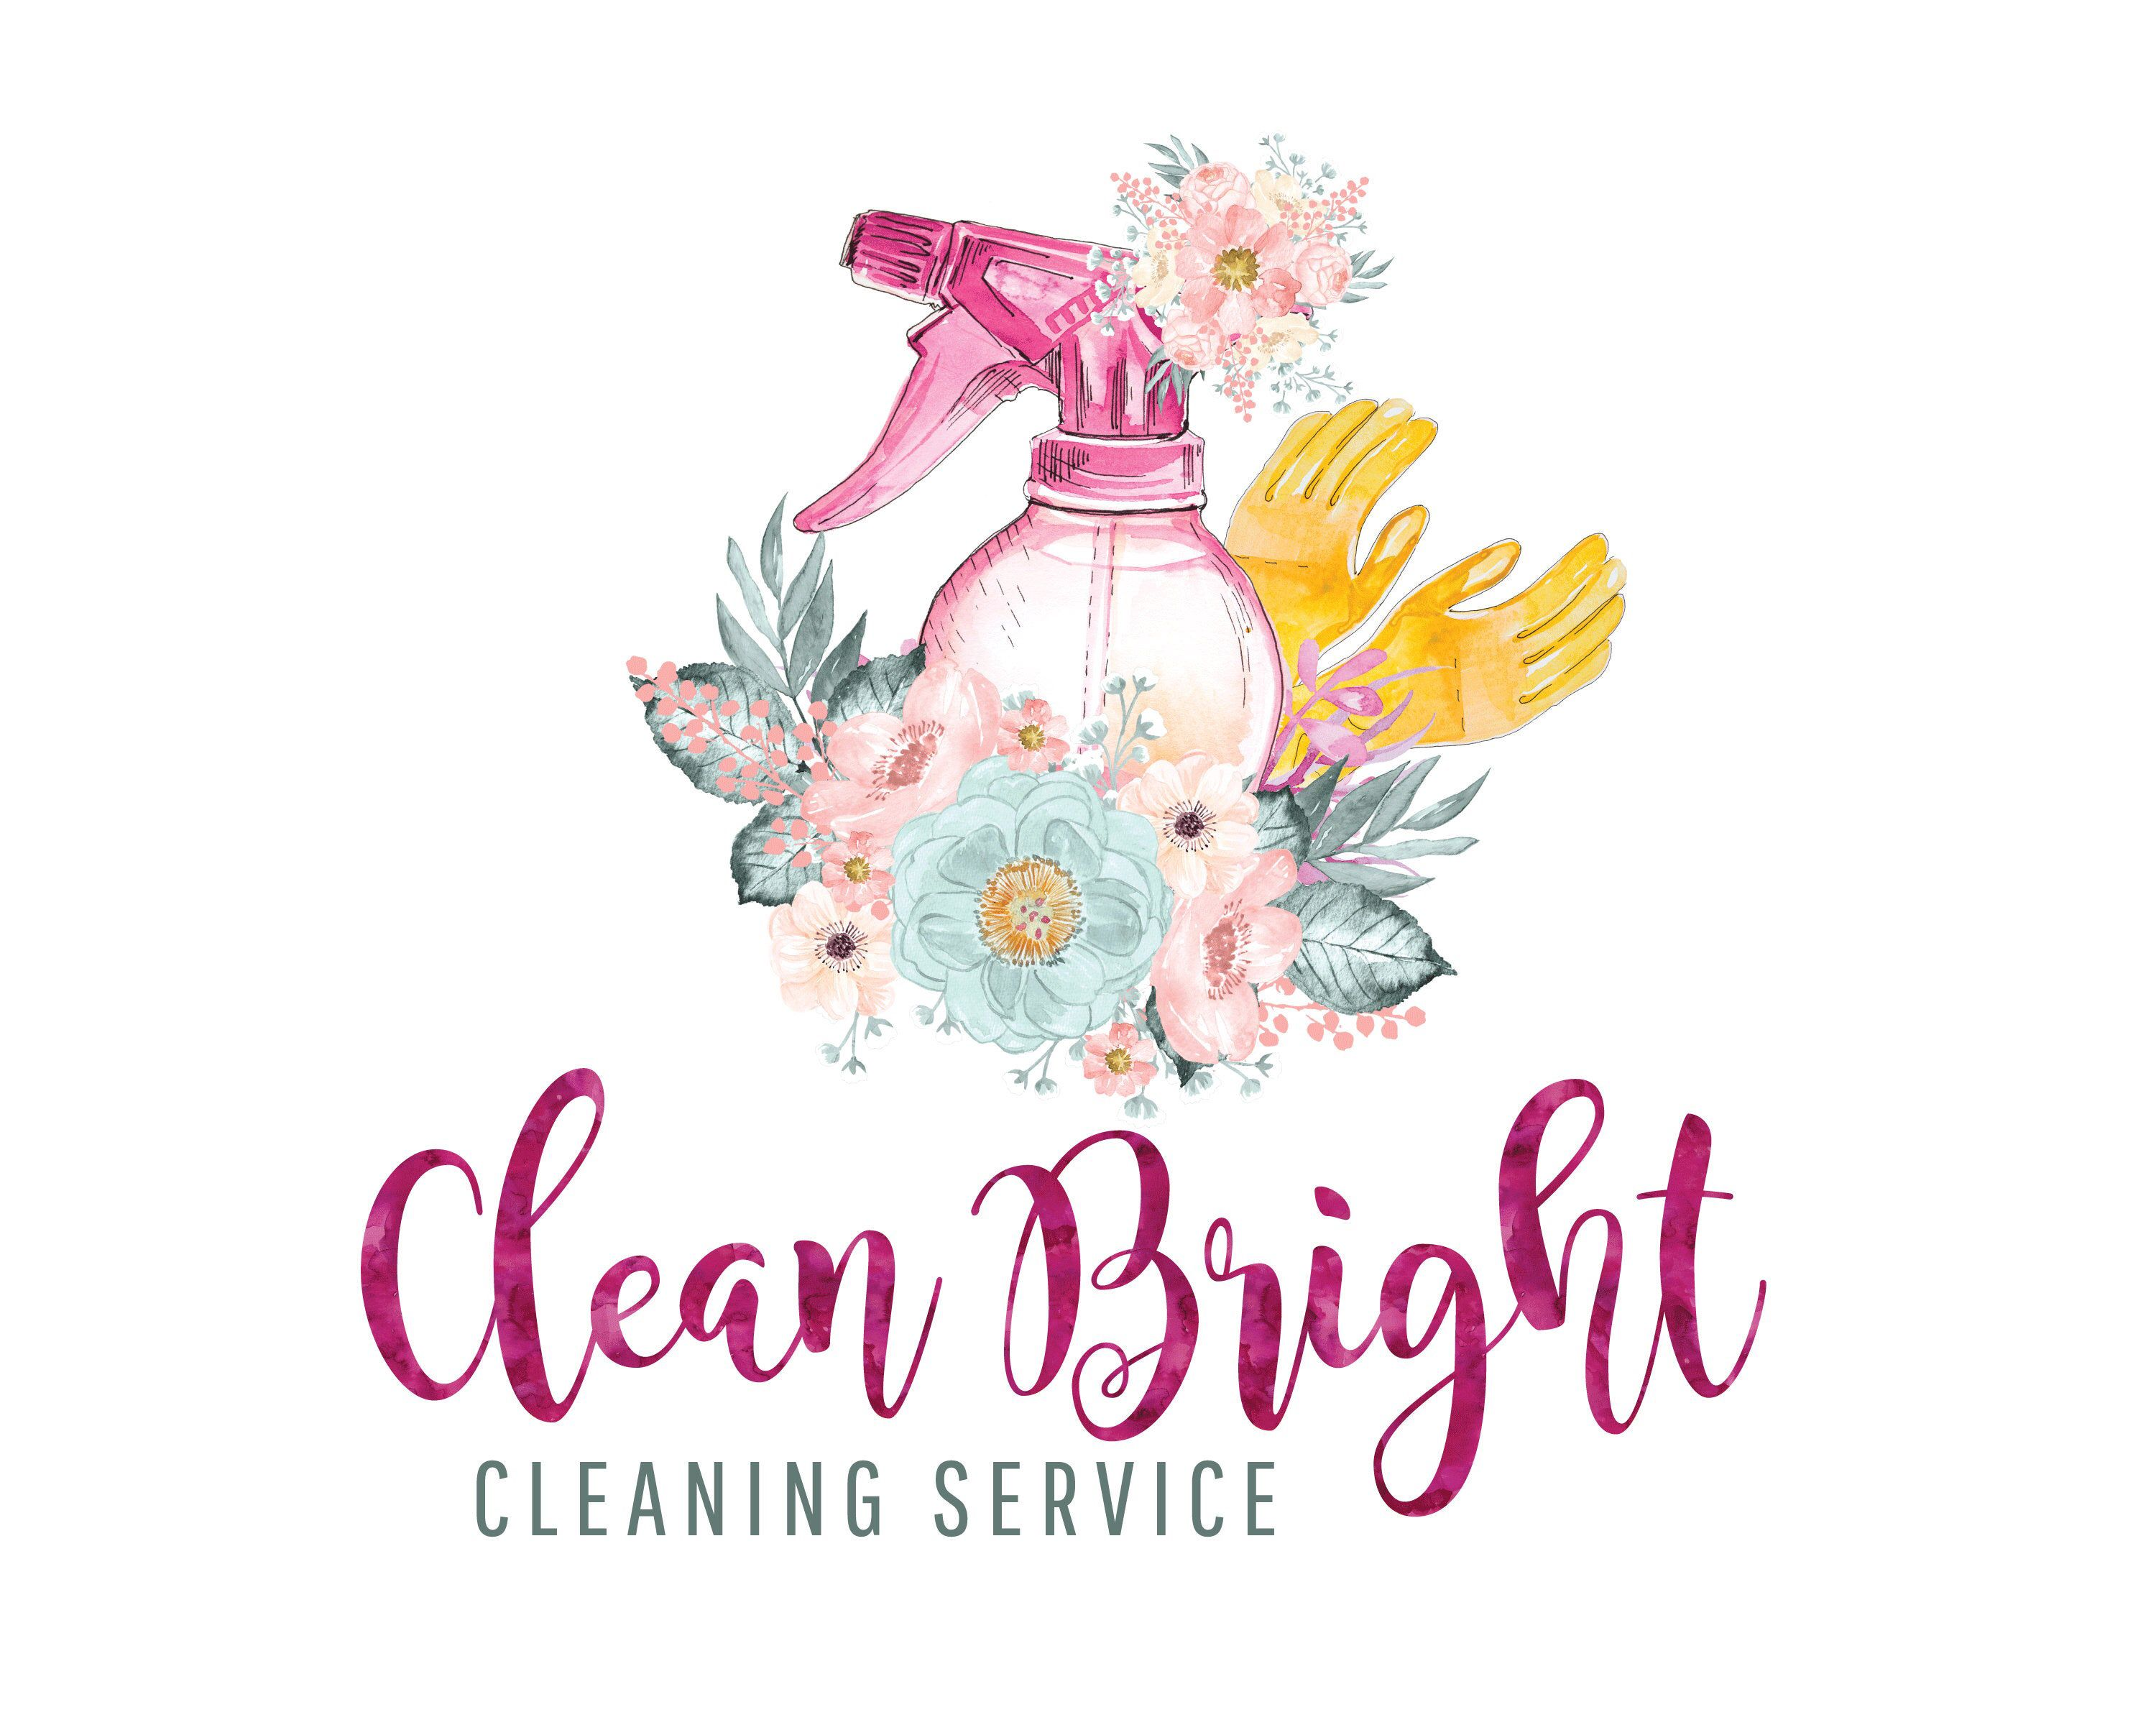 Cleaning Logo Maid Logo House Cleaning Service Logo Cleaner Logo Floral Logo Office Cleaning Logo Branding Clean Logo Cleaning Lady Cleaning Service Logo Cleaning Logo Cleaners Logo